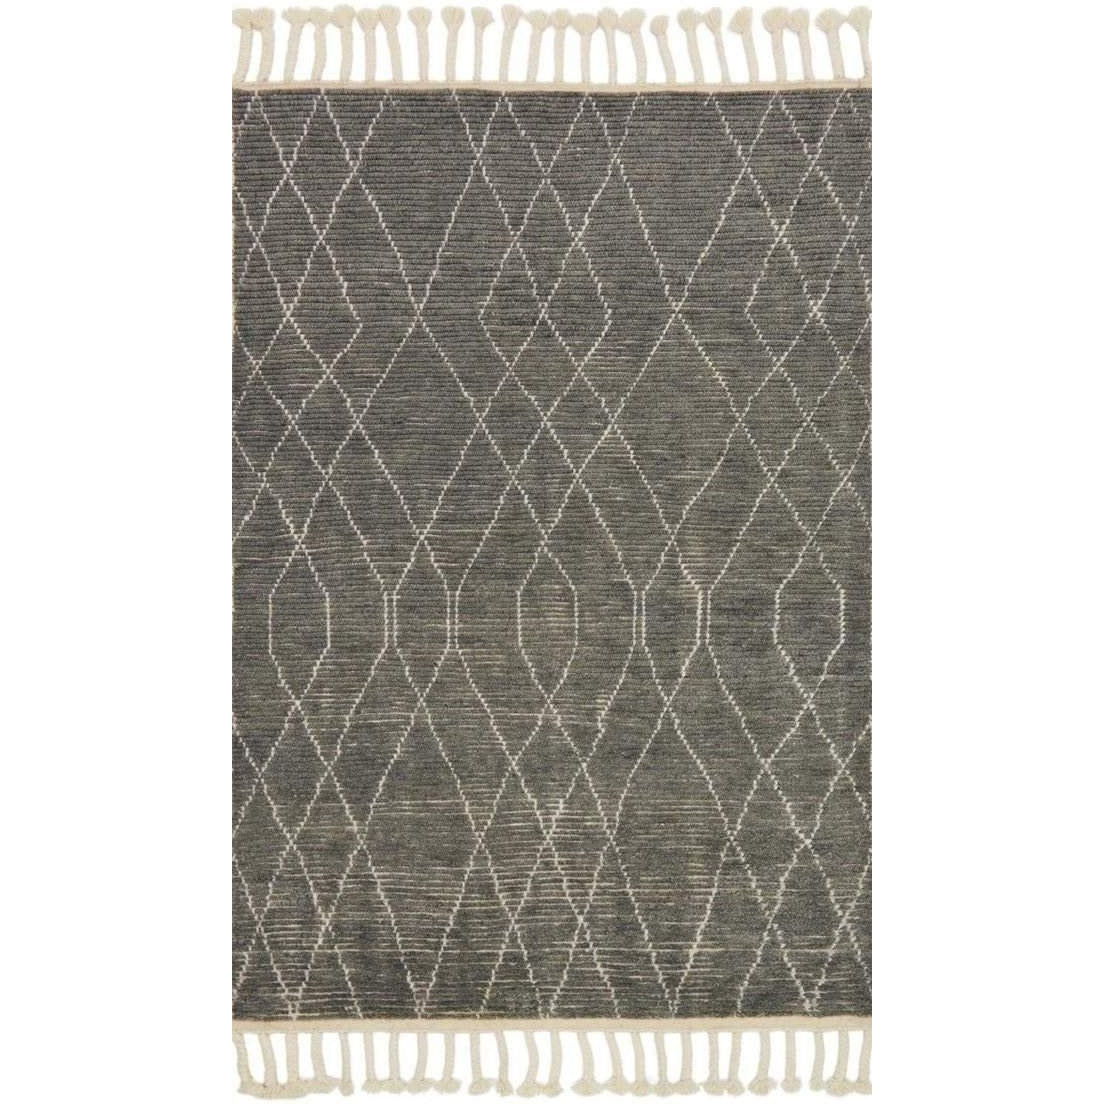 Joanna Gaines Of Magnolia Home Tulum Rug Collection - Grey / Ivory